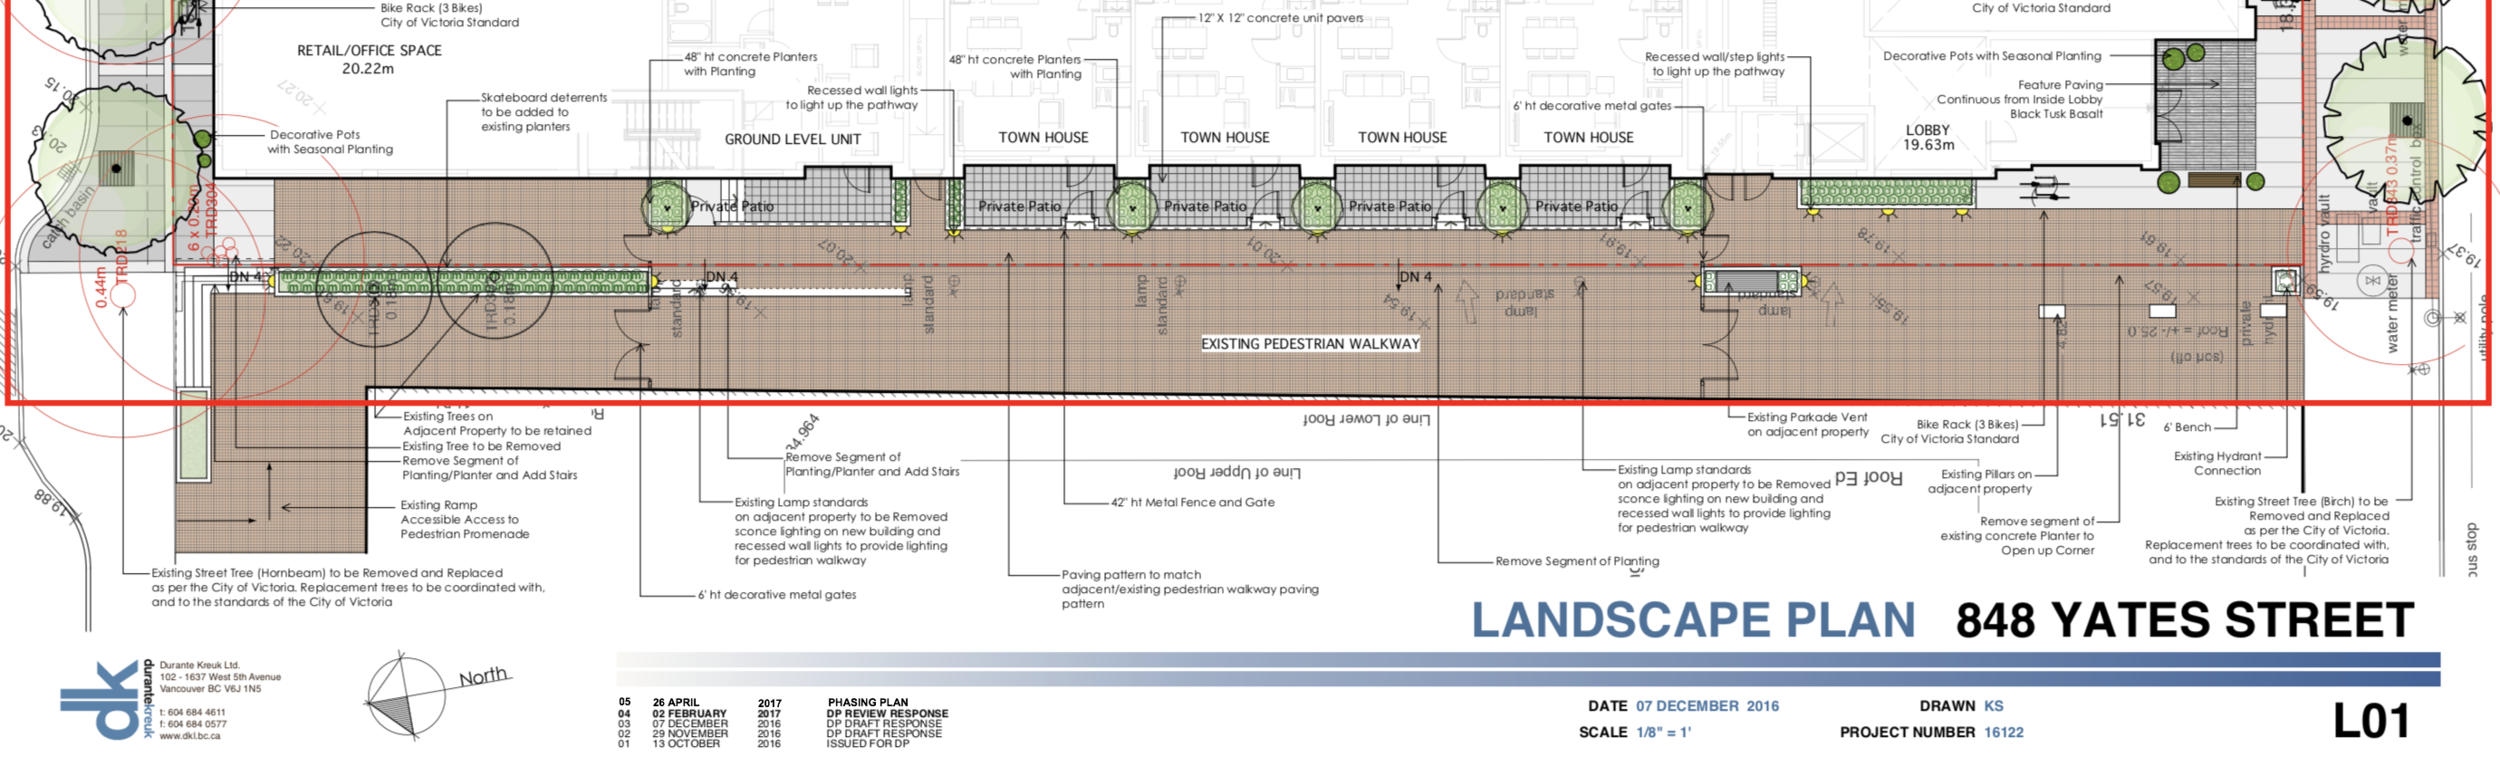 Plans for a wider, fenced-off walkway. Image source:  City of Victoria  (large file size).